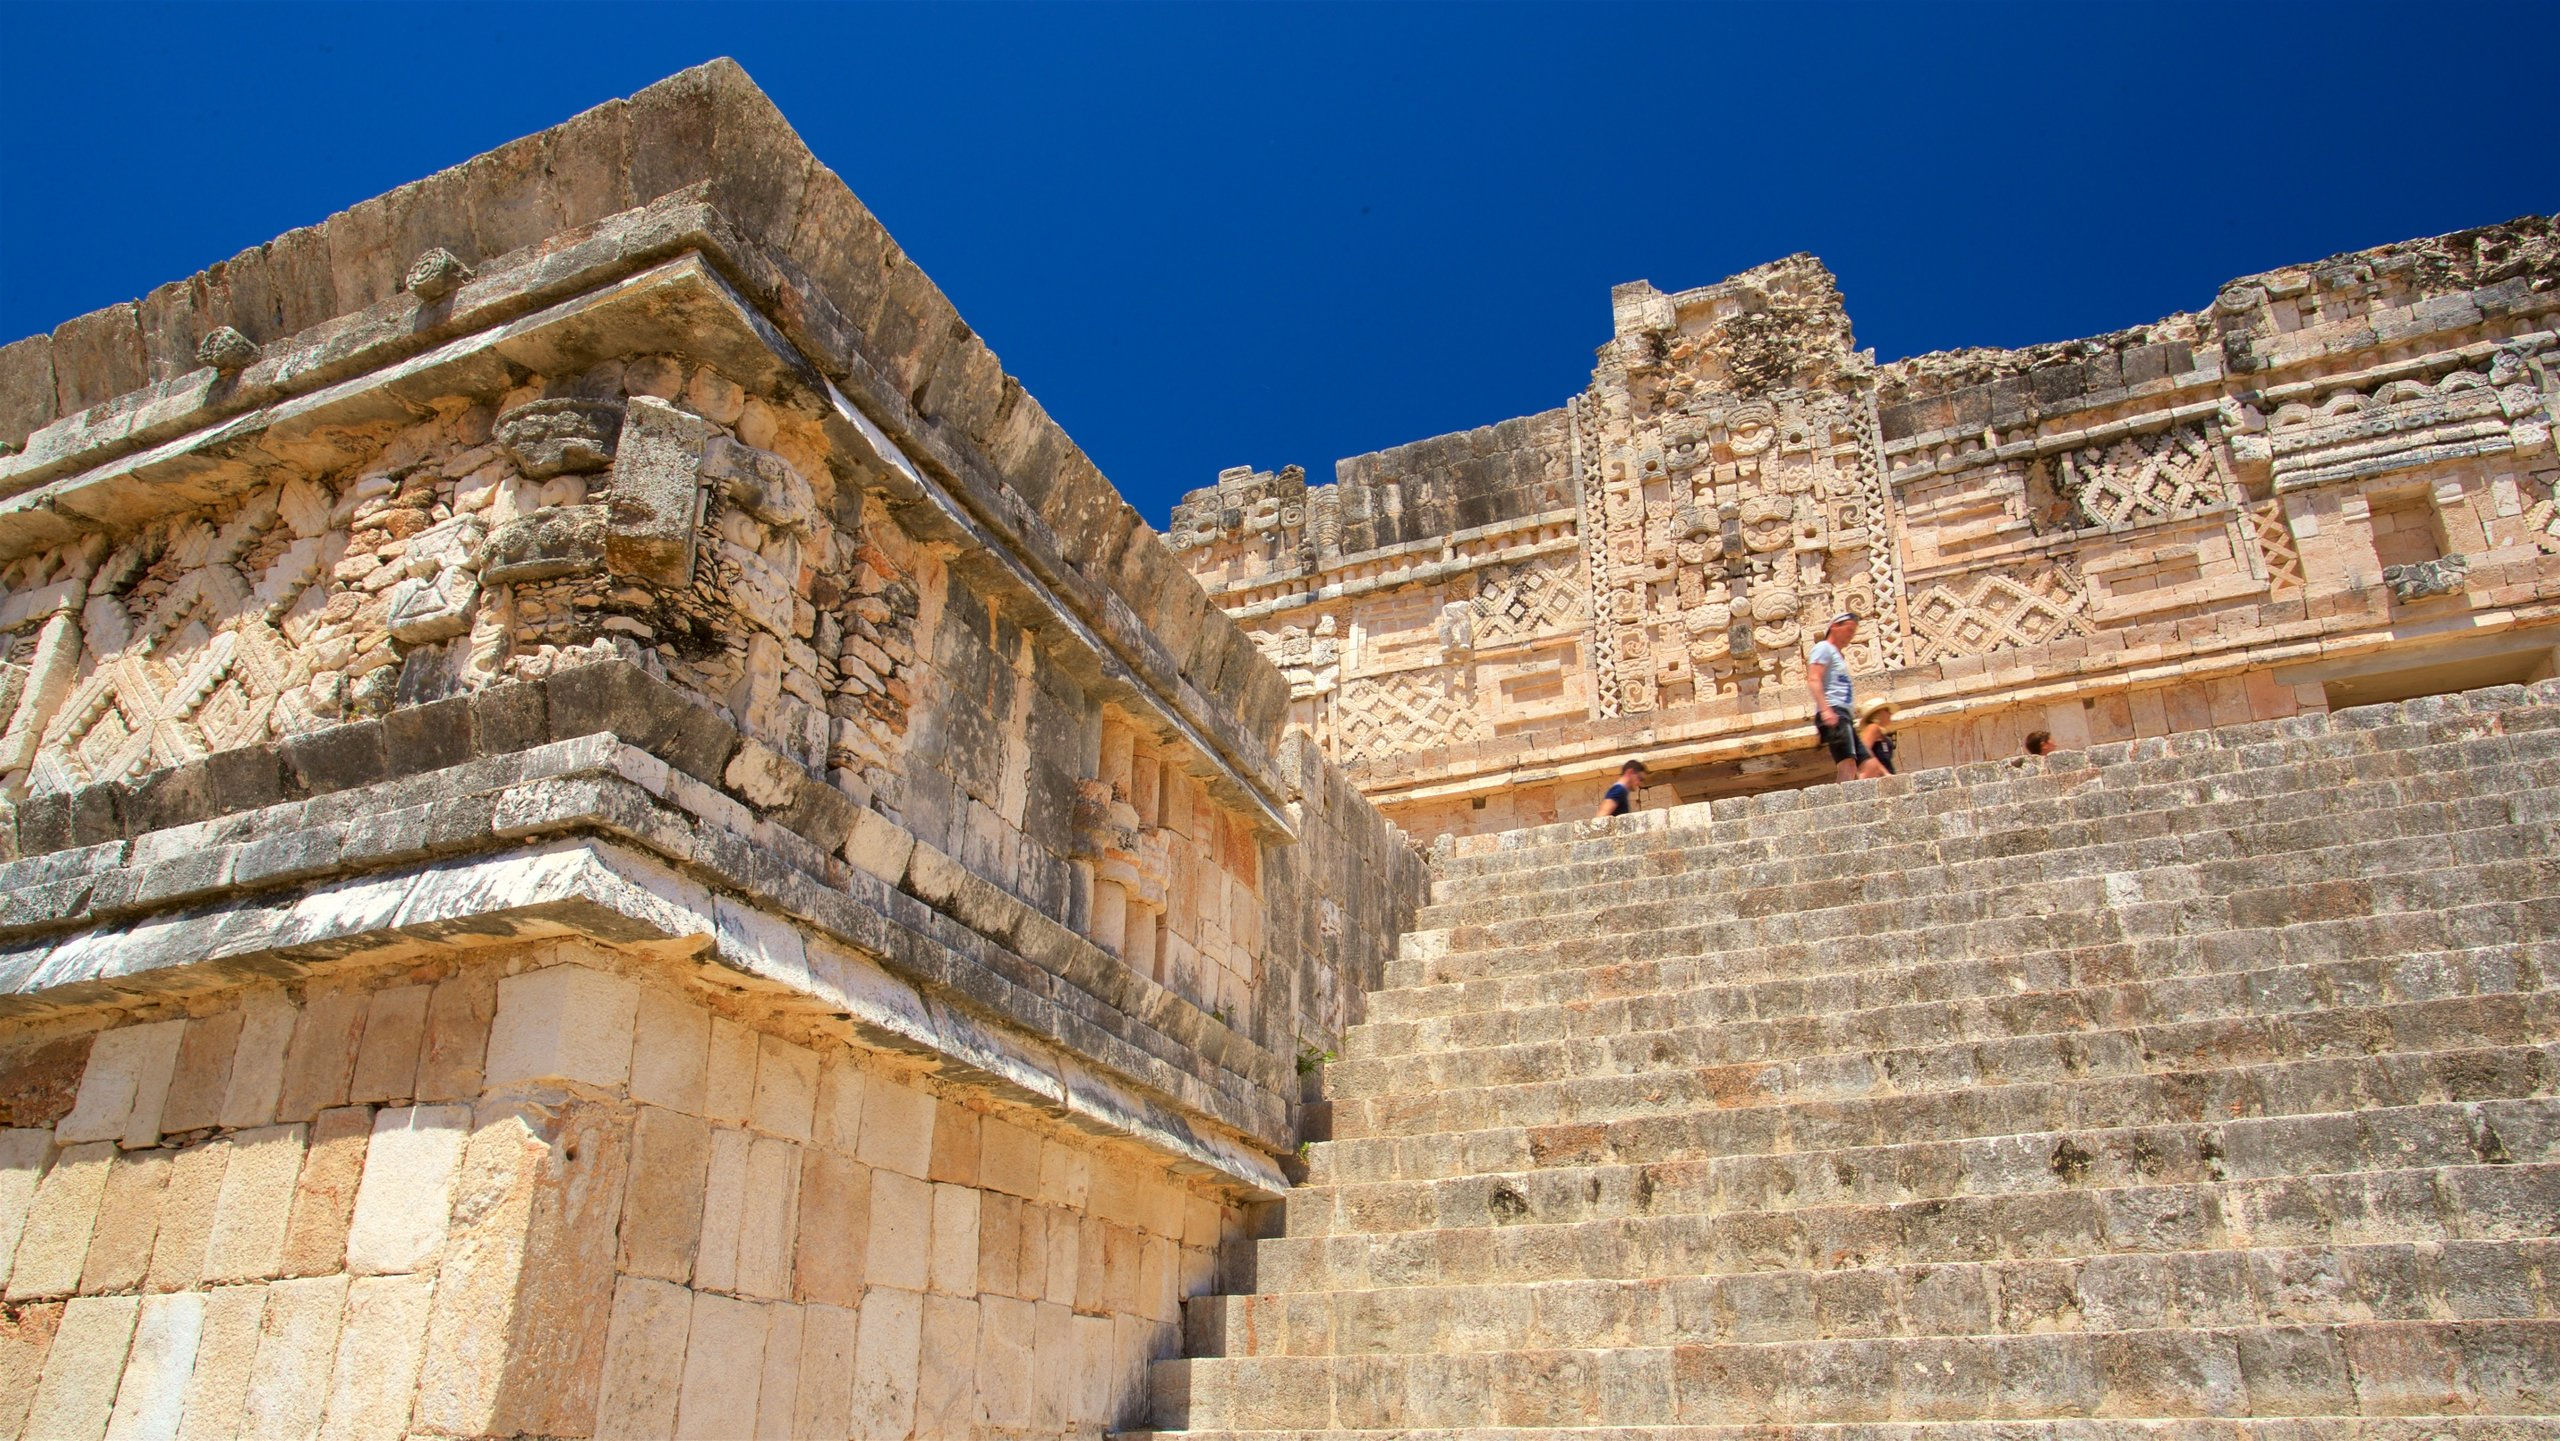 Learn about the local history of Uxmal when you take a trip to Uxmal Archaeological Site. While in this relaxing area, you can savor the local chocolate shops and restaurants.